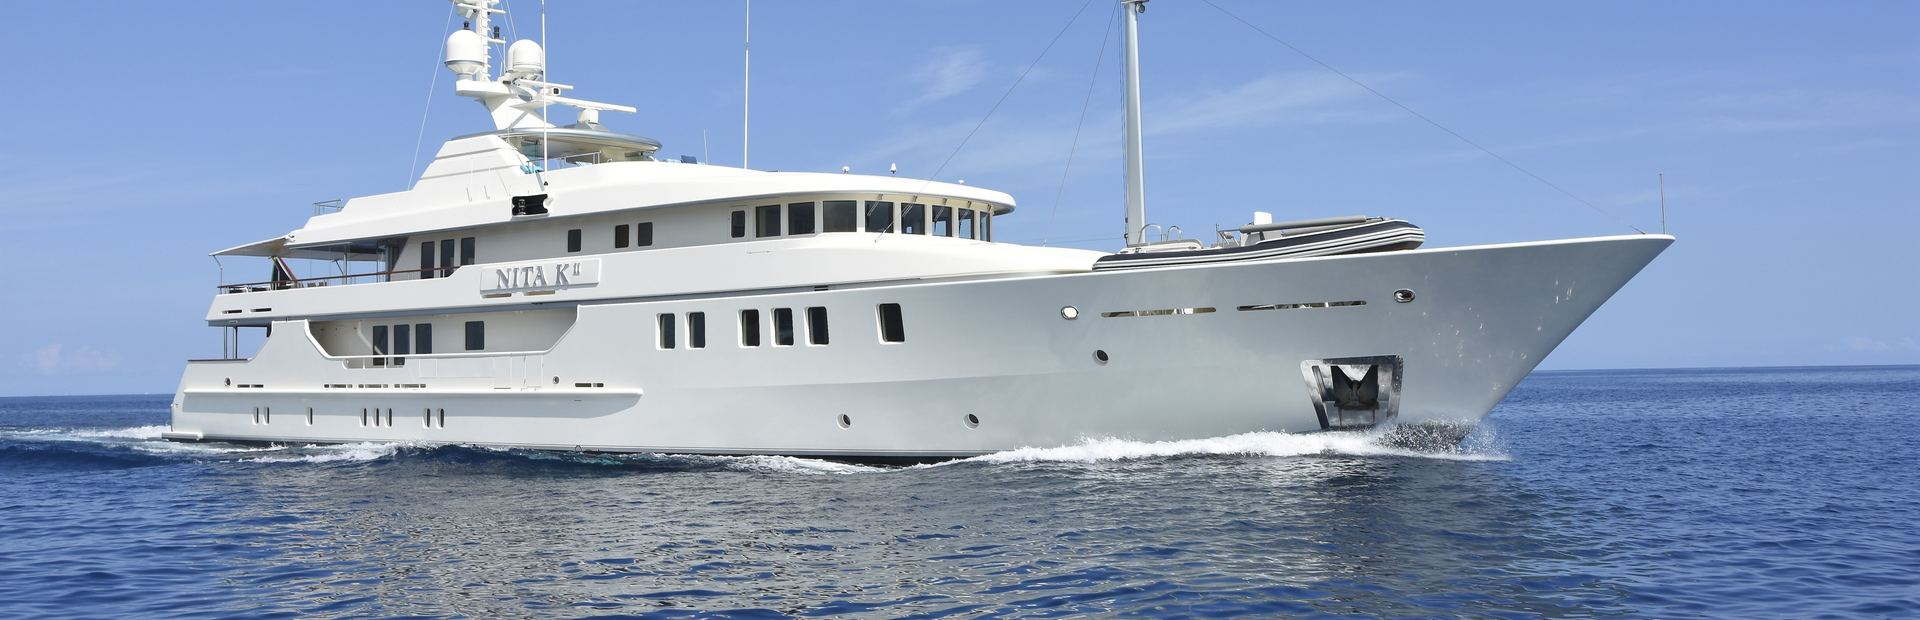 Tigre D'Or 50 Yacht Charter